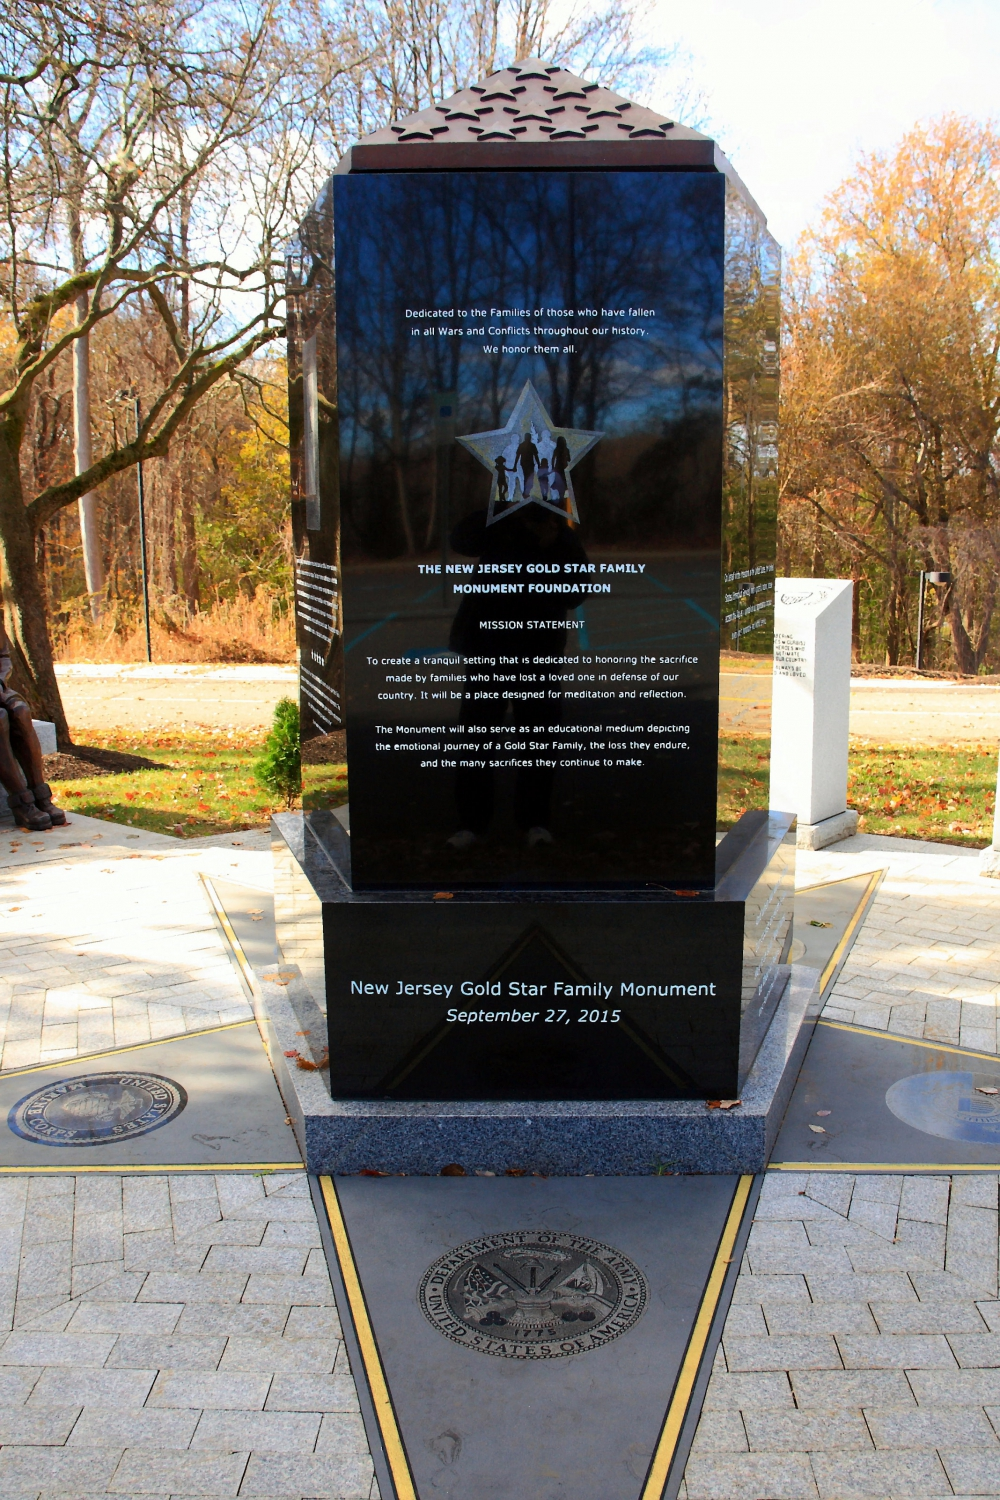 New Jersey Gold Star Family Monument